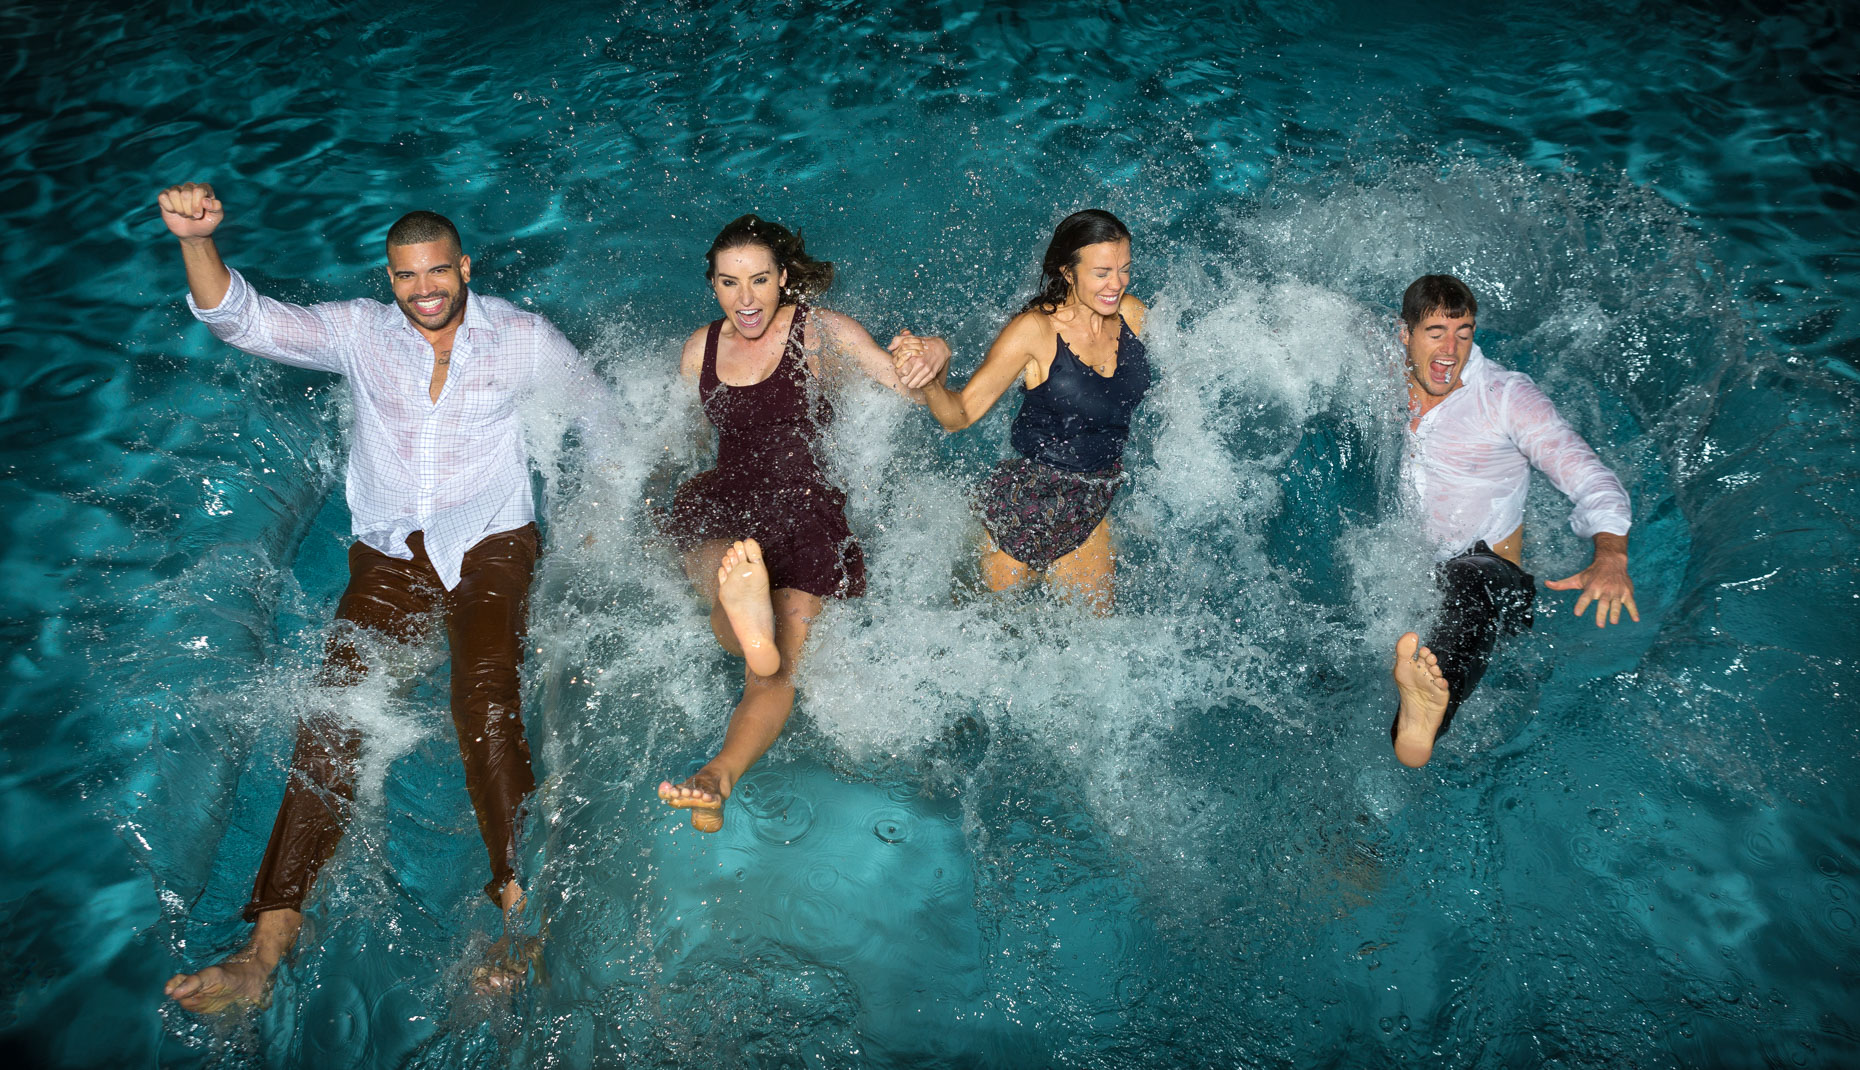 Four friends falling into pool, fully dressed, shot by Steven P. Widoff